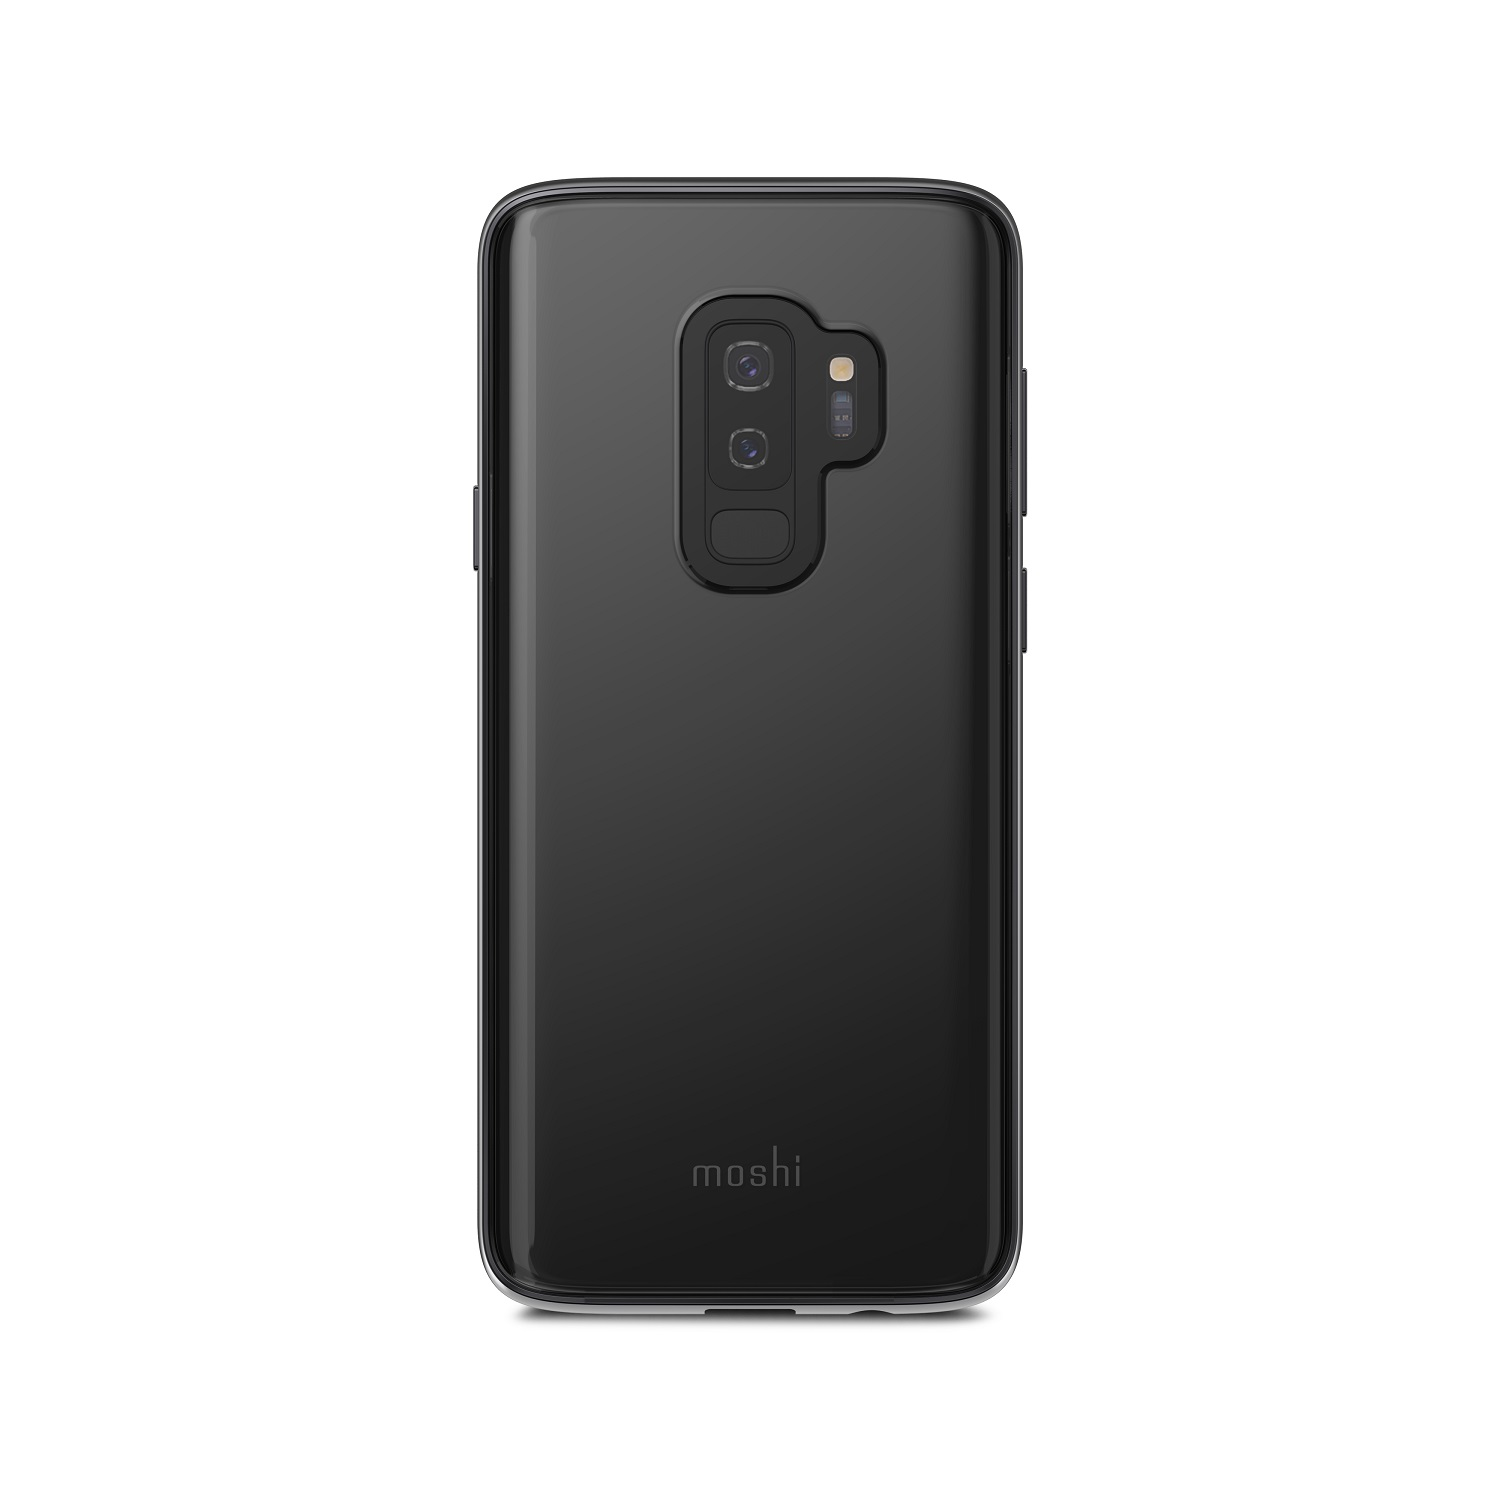 Moshi Vitros Case for Samsung Galaxy S9+